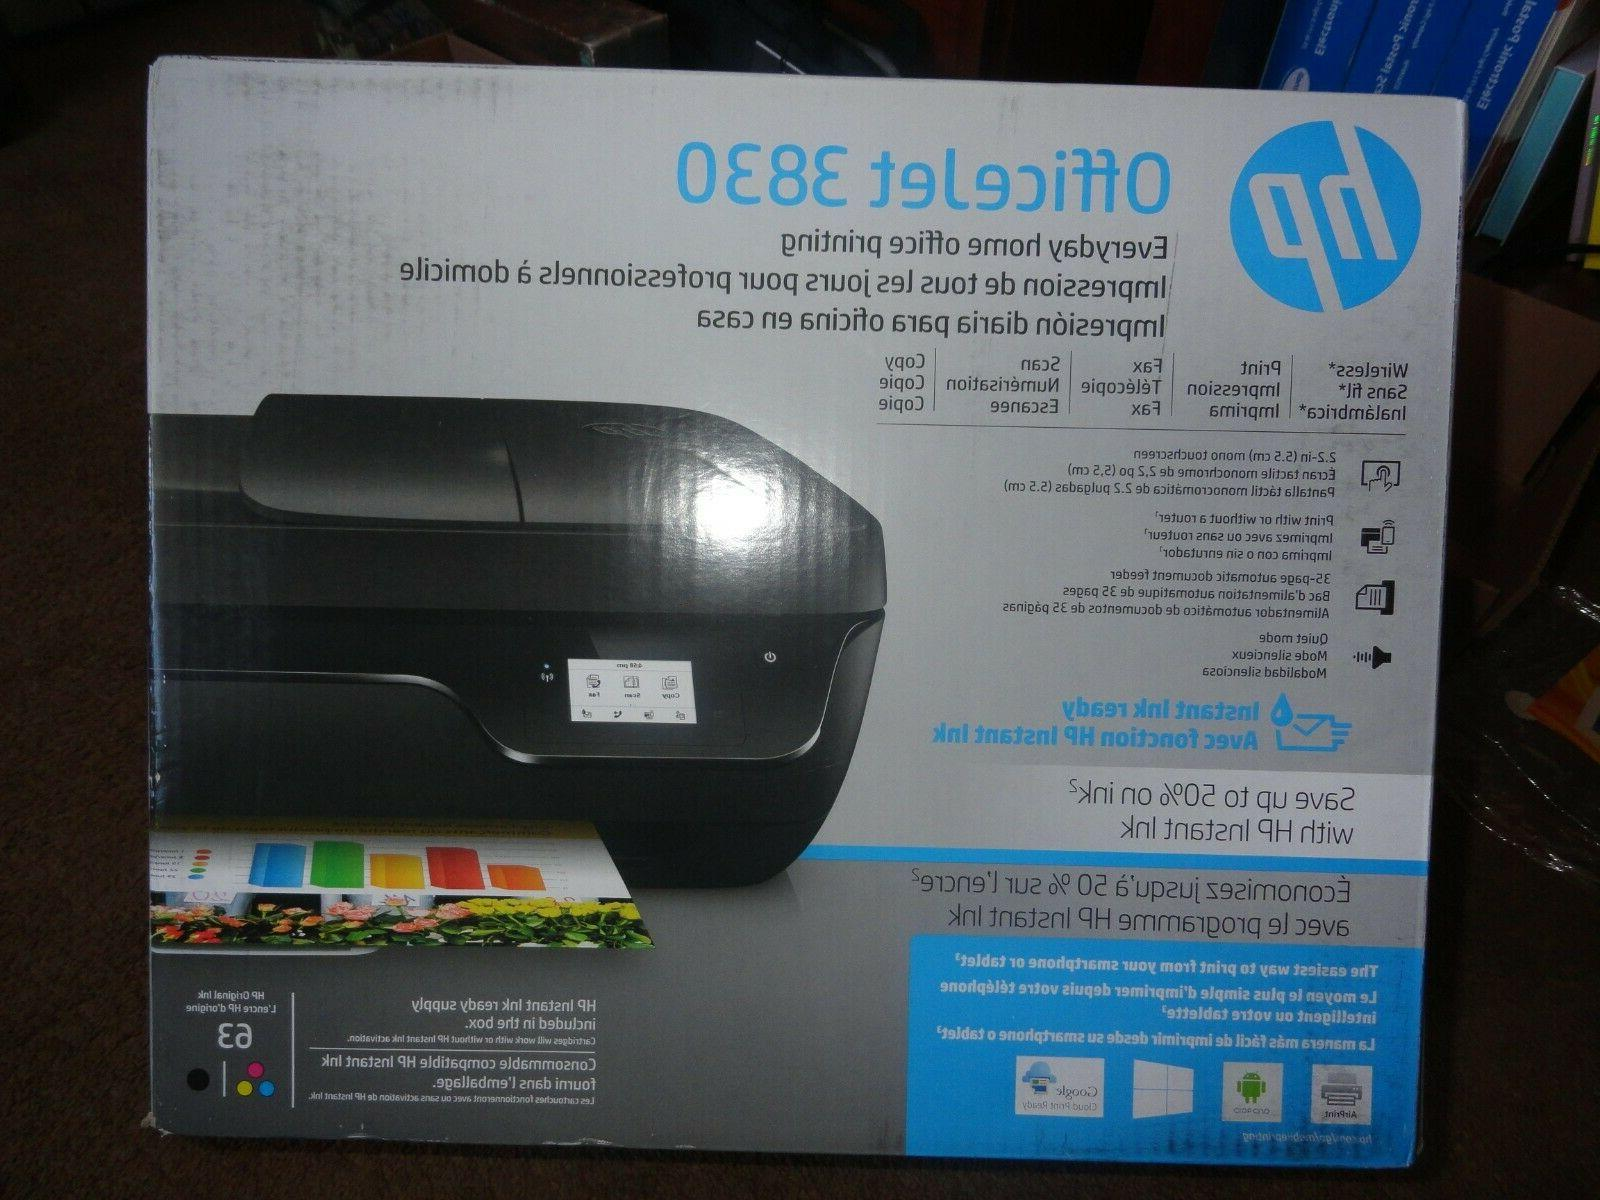 officejet 3830 all in one printer print